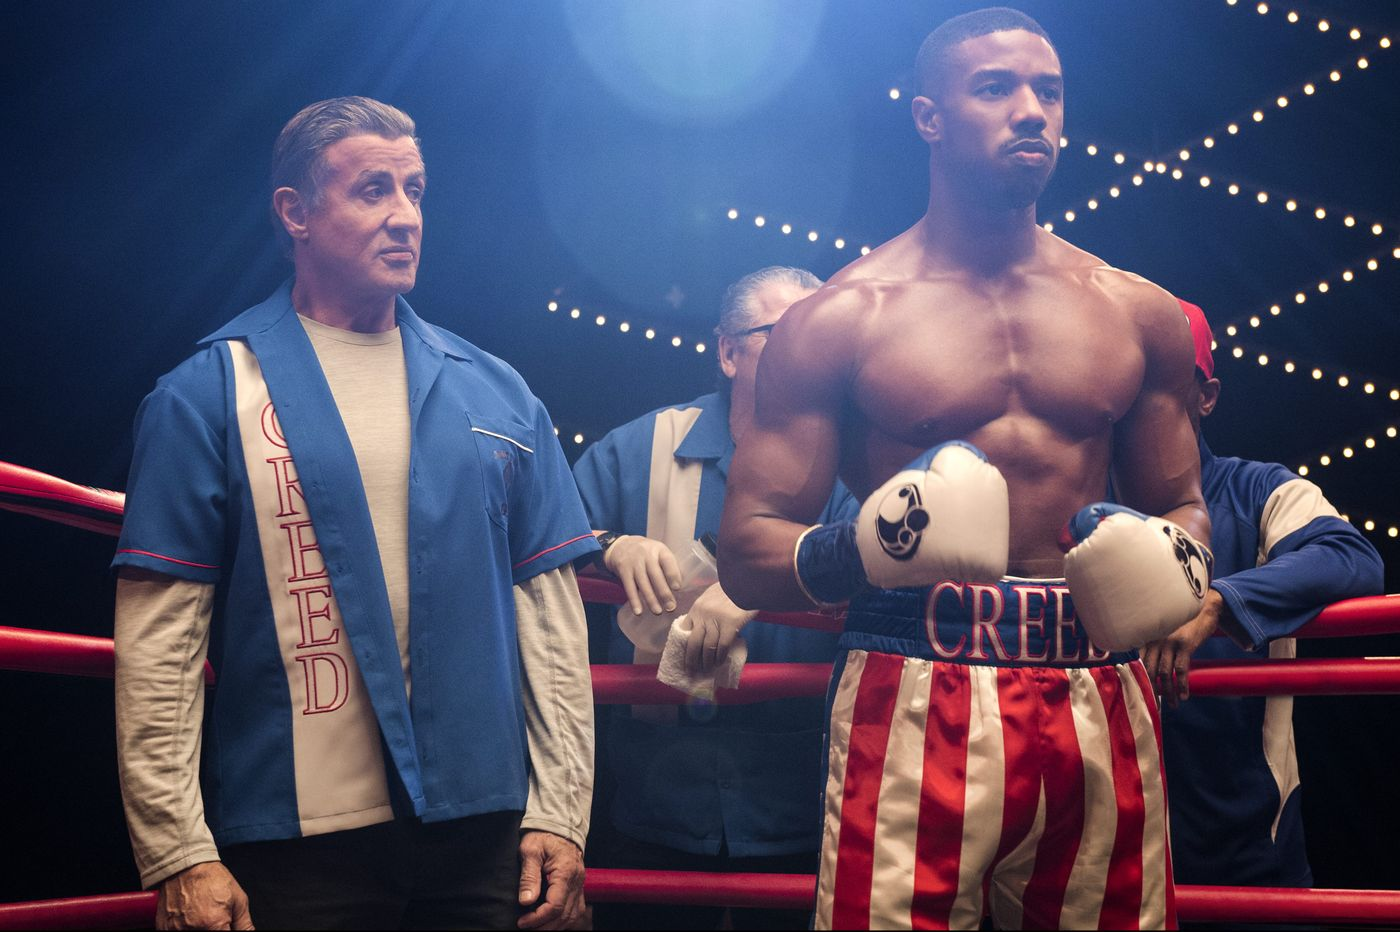 creed 2 opening